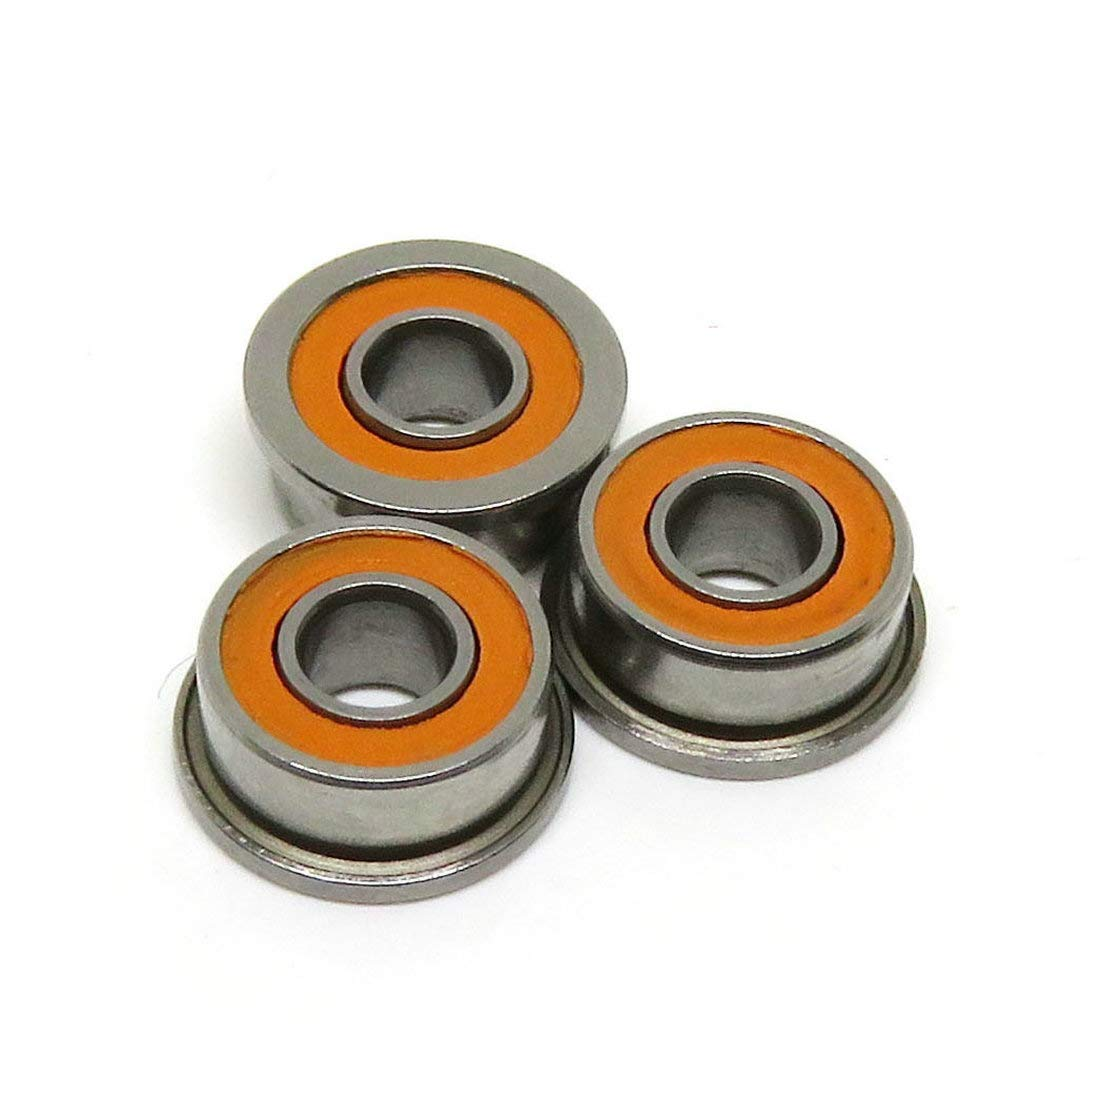 10 Stainless Steel Ball Bearing 5x8x2.5 ABEC-5 VXB